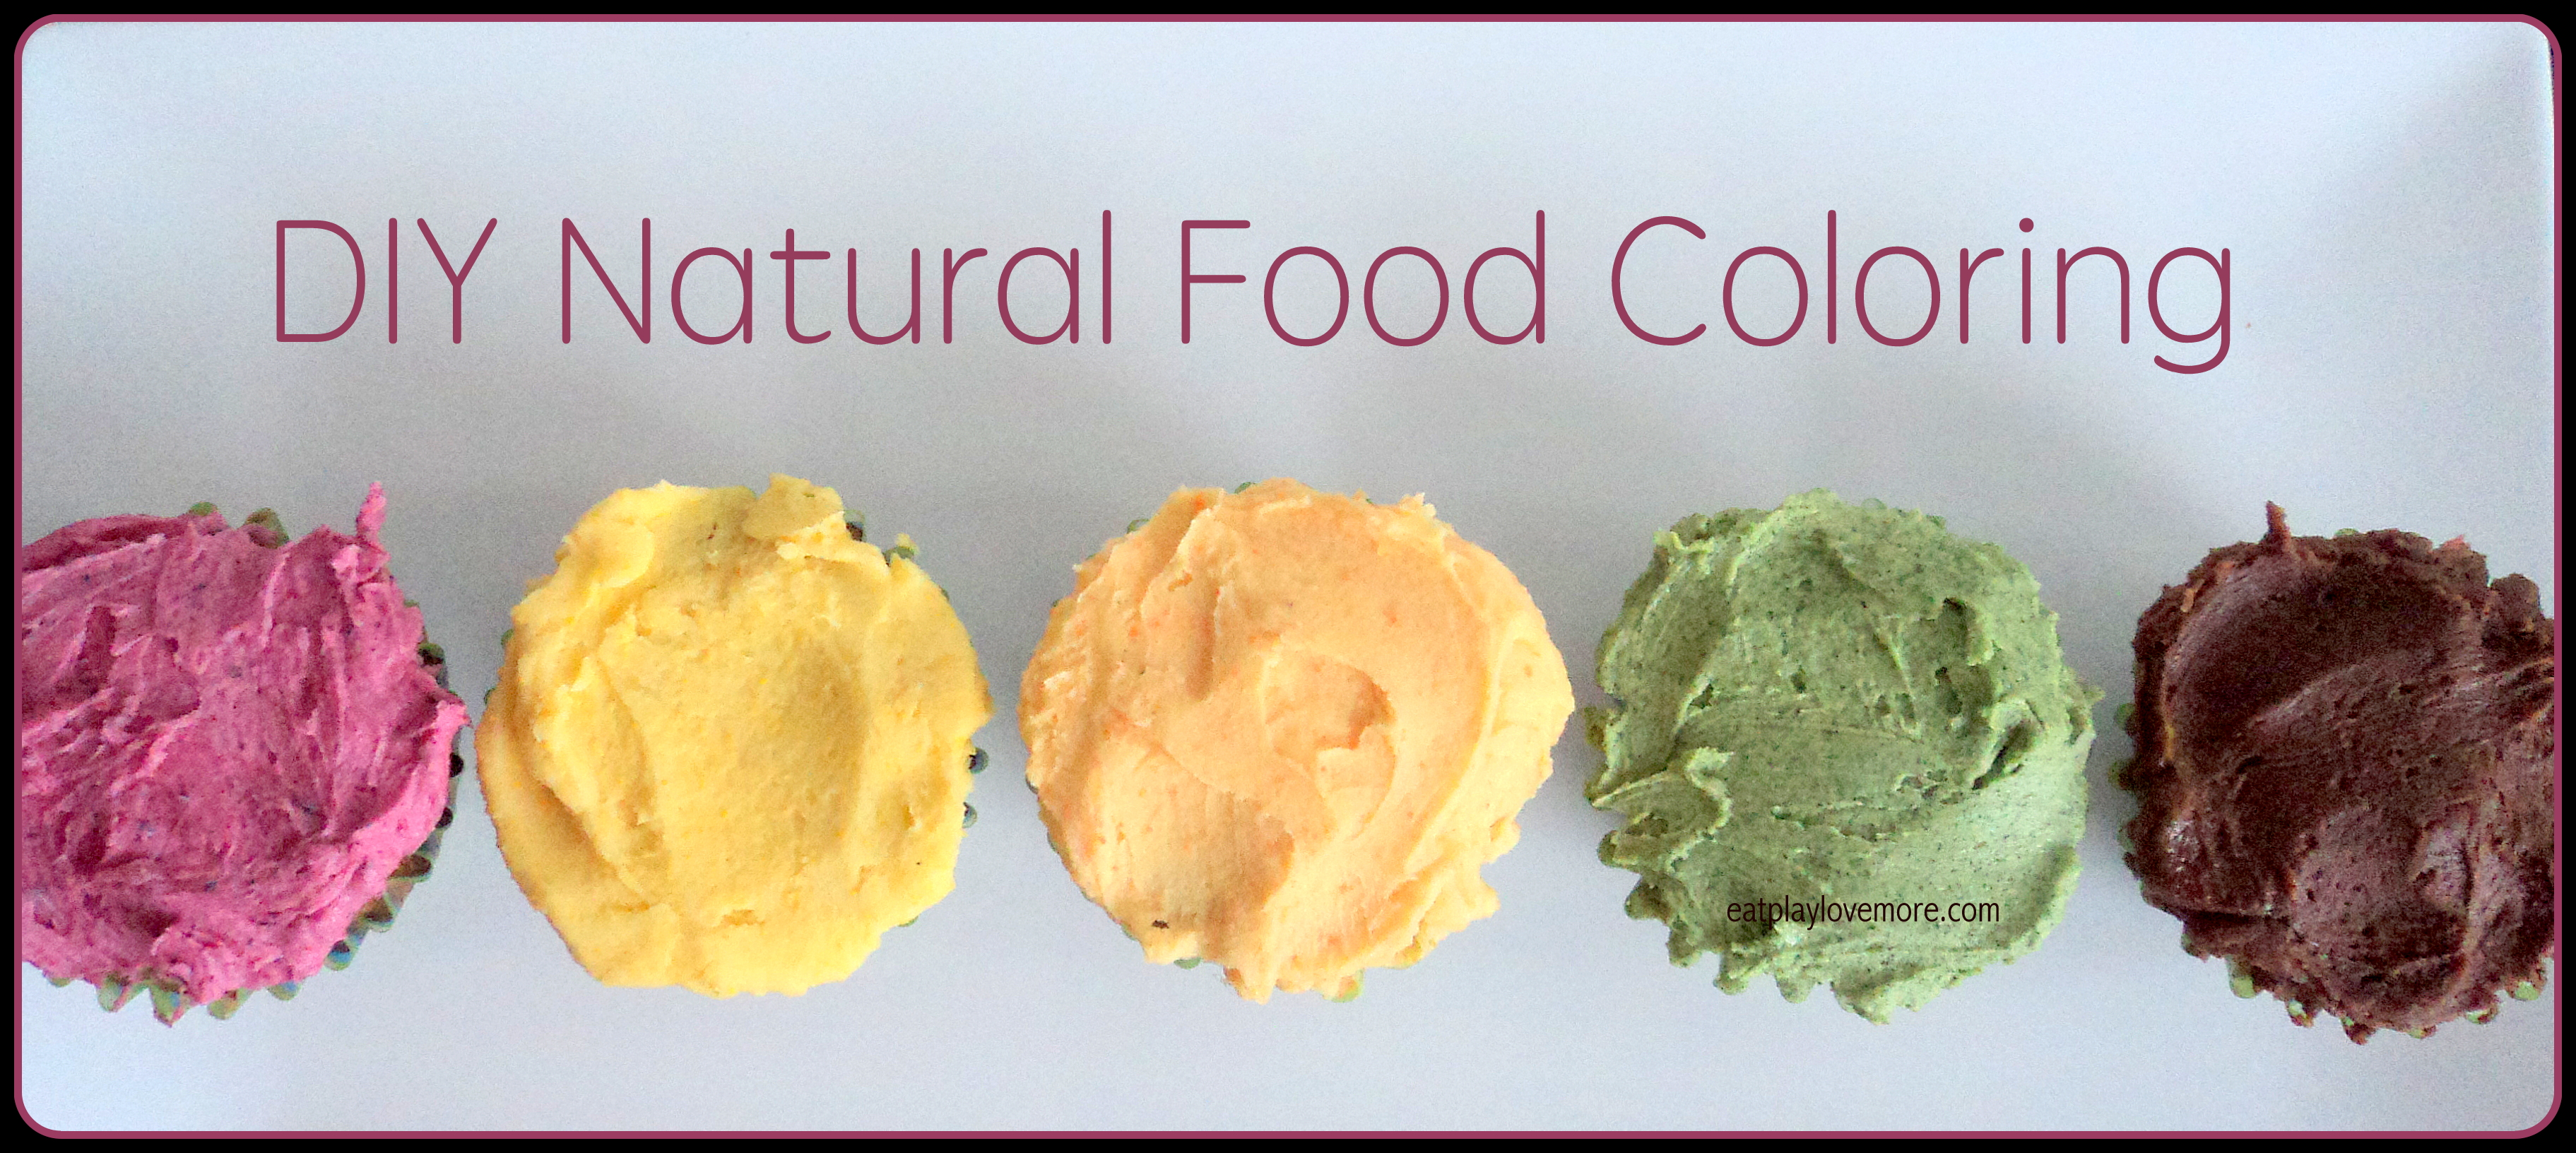 DIY Natural Food Coloring | Eat. Play. Love... More